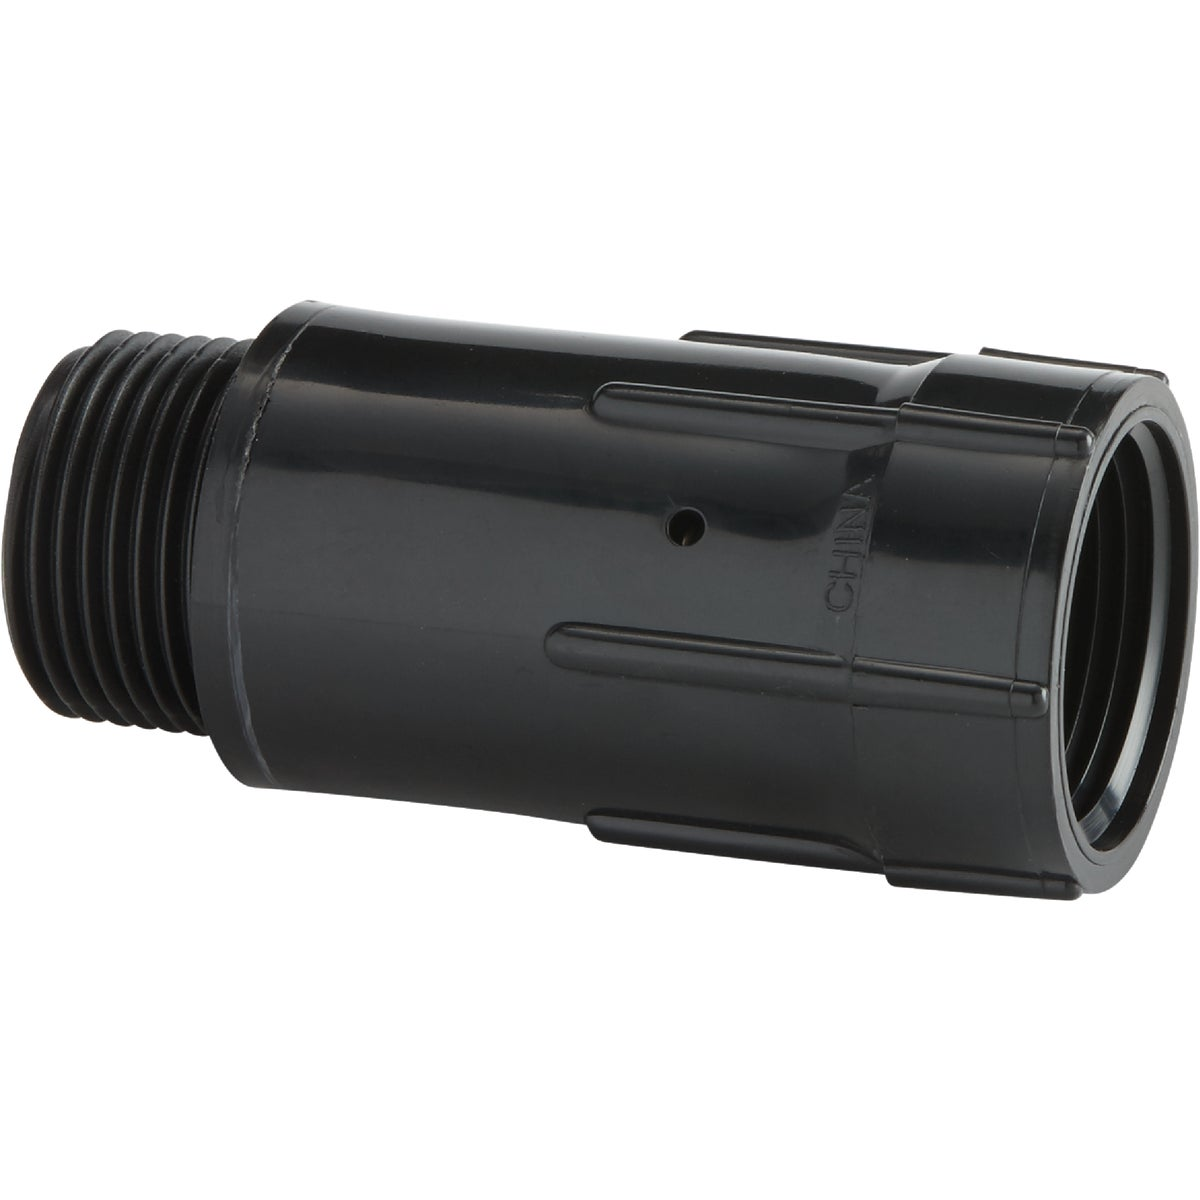 "REG 3/4""PRESSUR - 46500U-8 by Raindrip Inc"